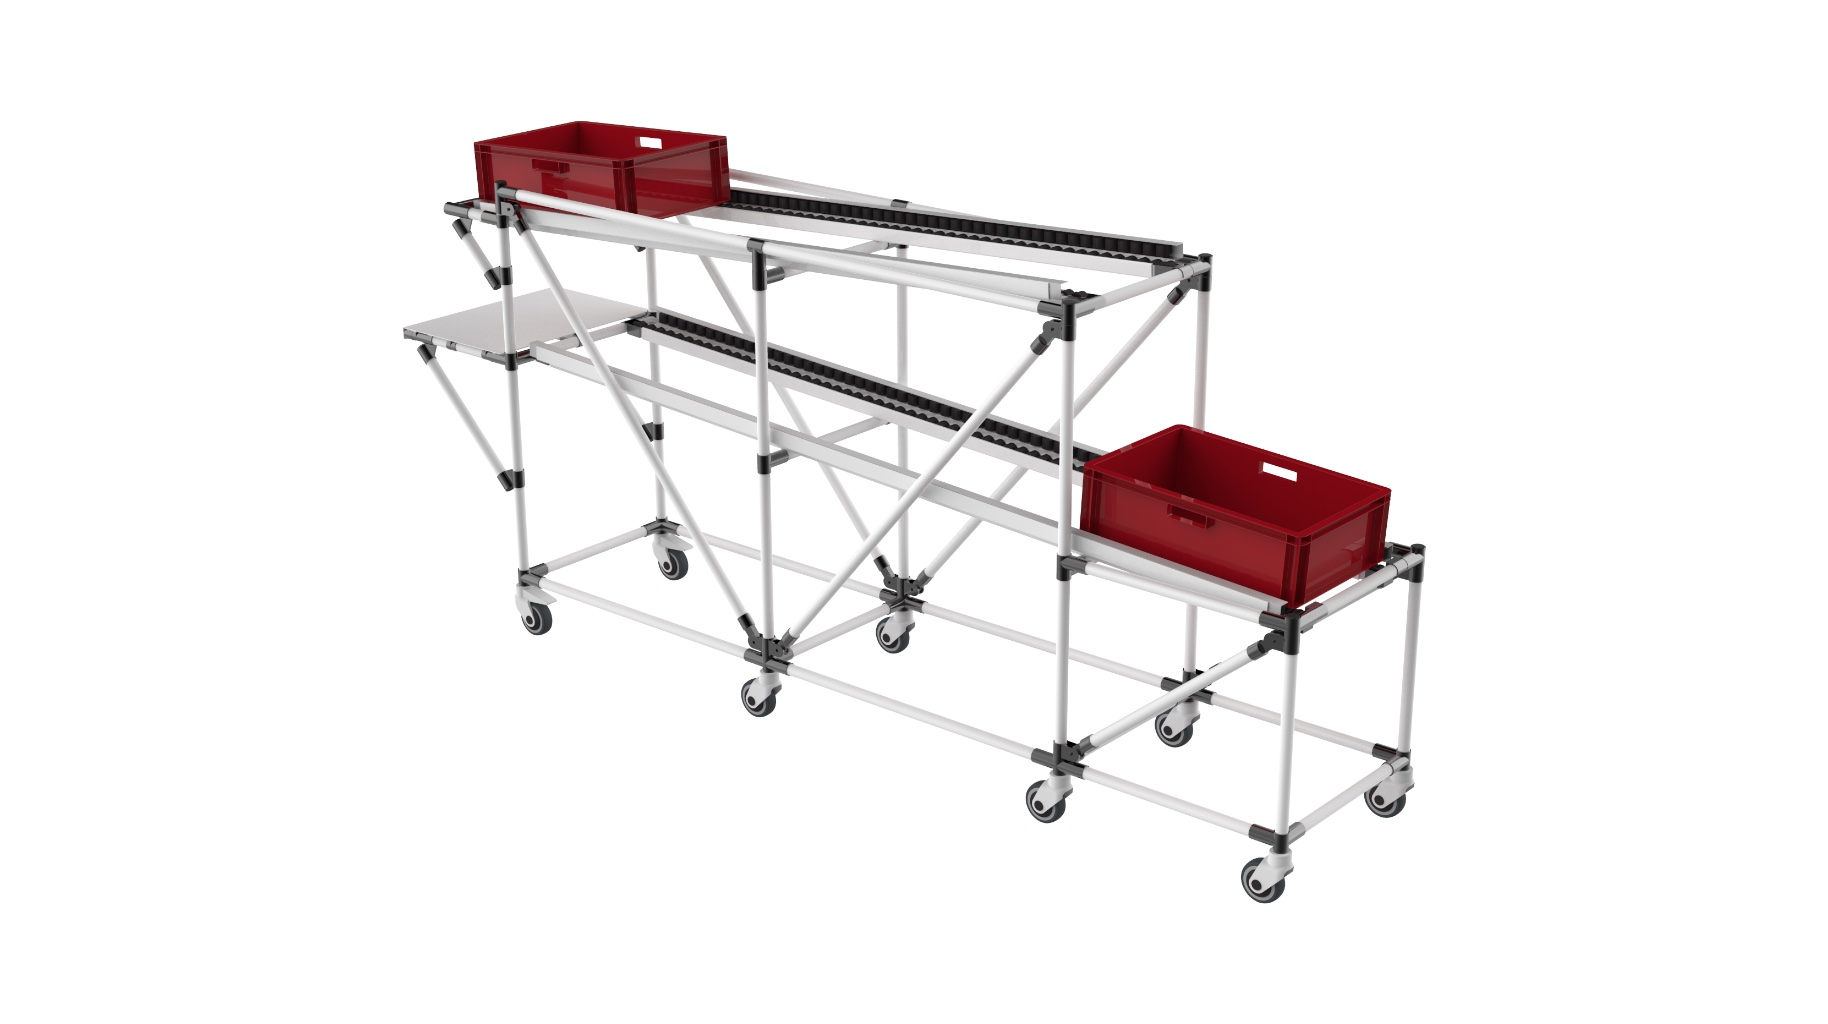 Automotive industry - Bespoke mobile live storage with top return level and back position presentation stage.